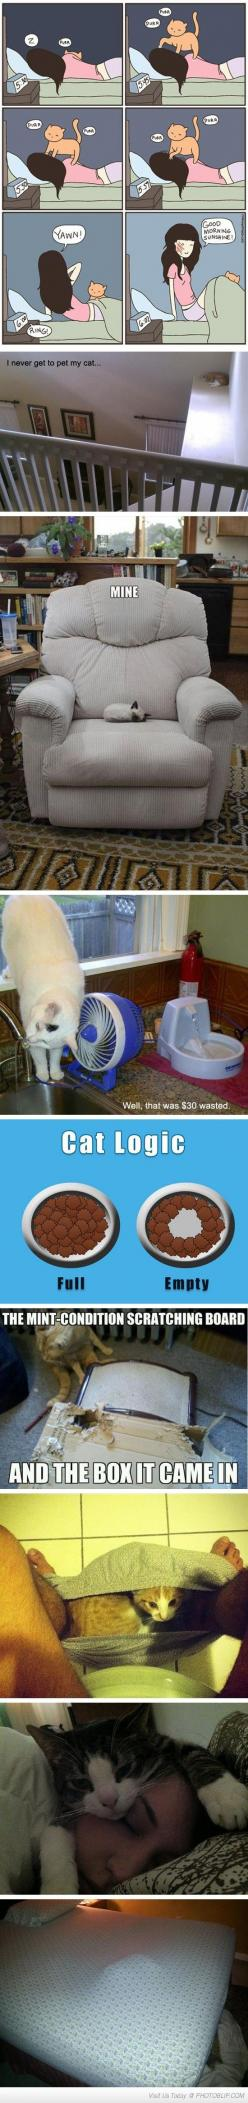 Kitties: Cats, Kitty Cat, Funny Cat, Cat Logic, Meow Meow, Crazy Cat, Funny Animal, Funny Cute Cat